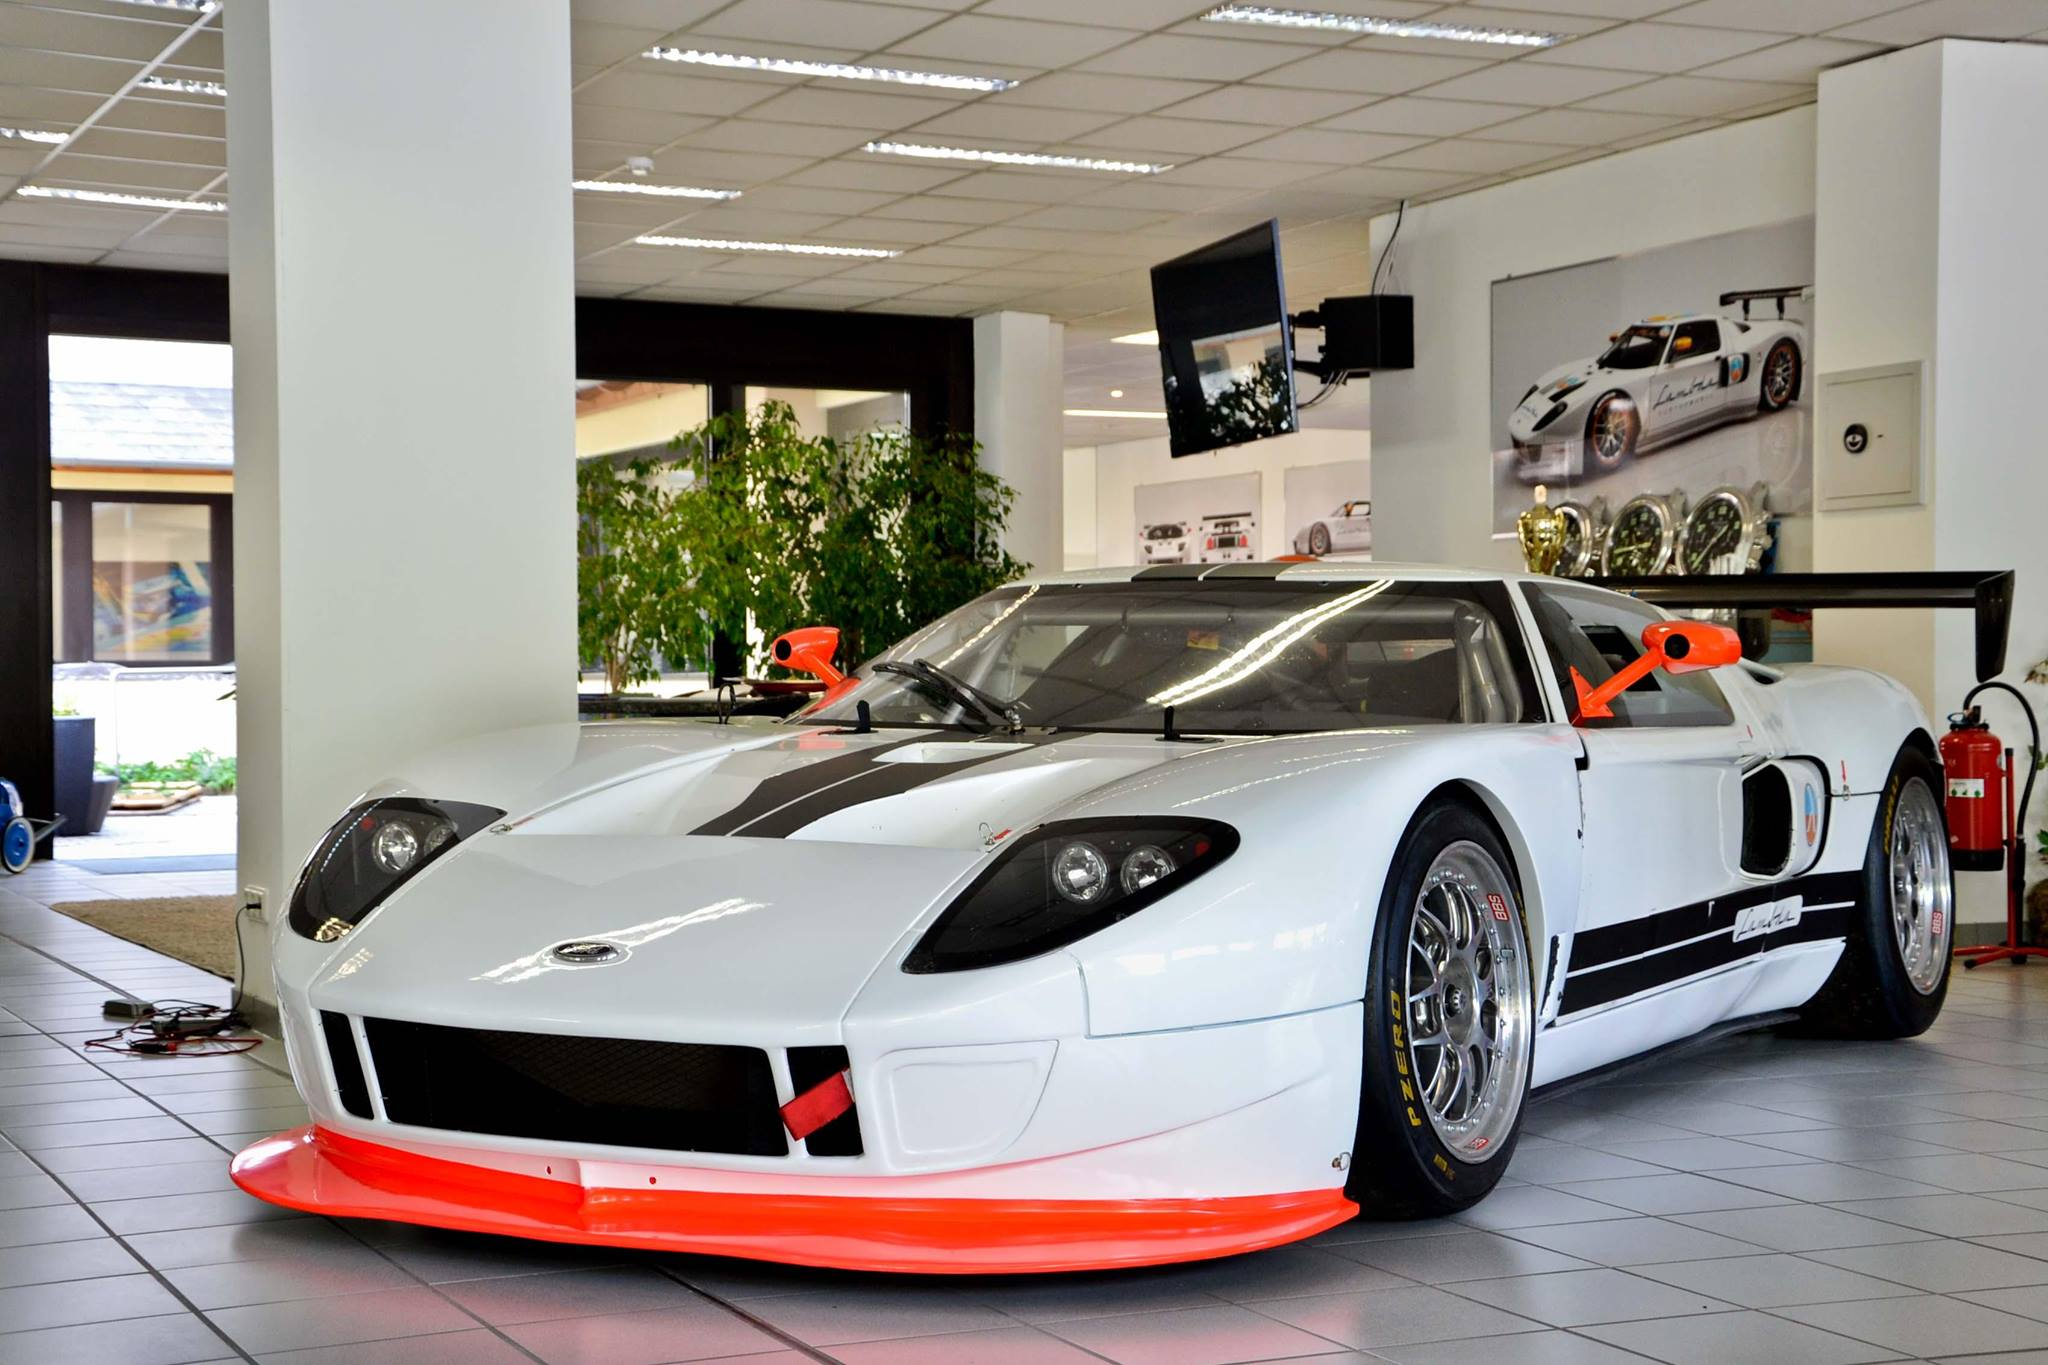 Lambda performance ford gt gt3 sounds will melt your ears video